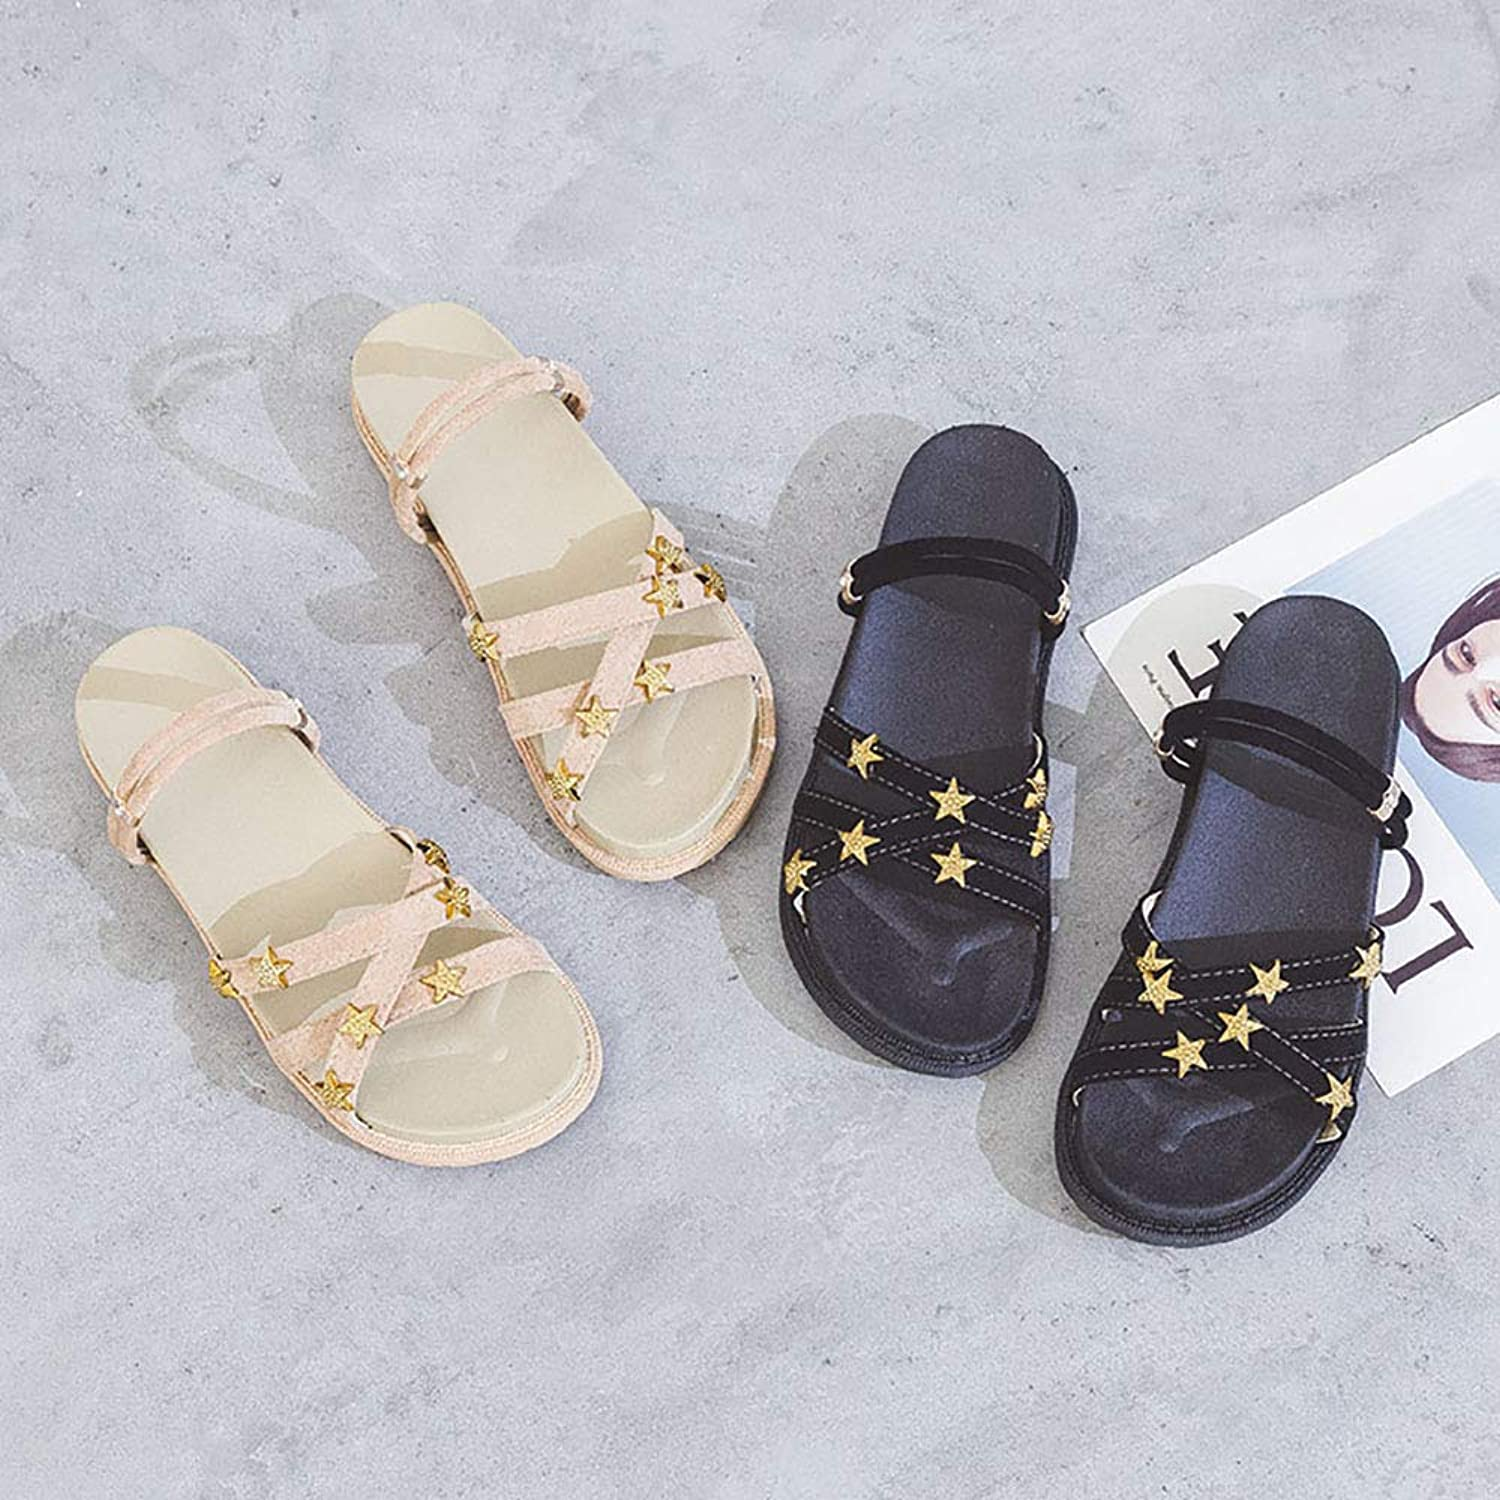 Sandals for Women, Gladiator Sandals for Women Platform Sandals Star Roman Sandals Slippers and Sandals in Two Ways to wear